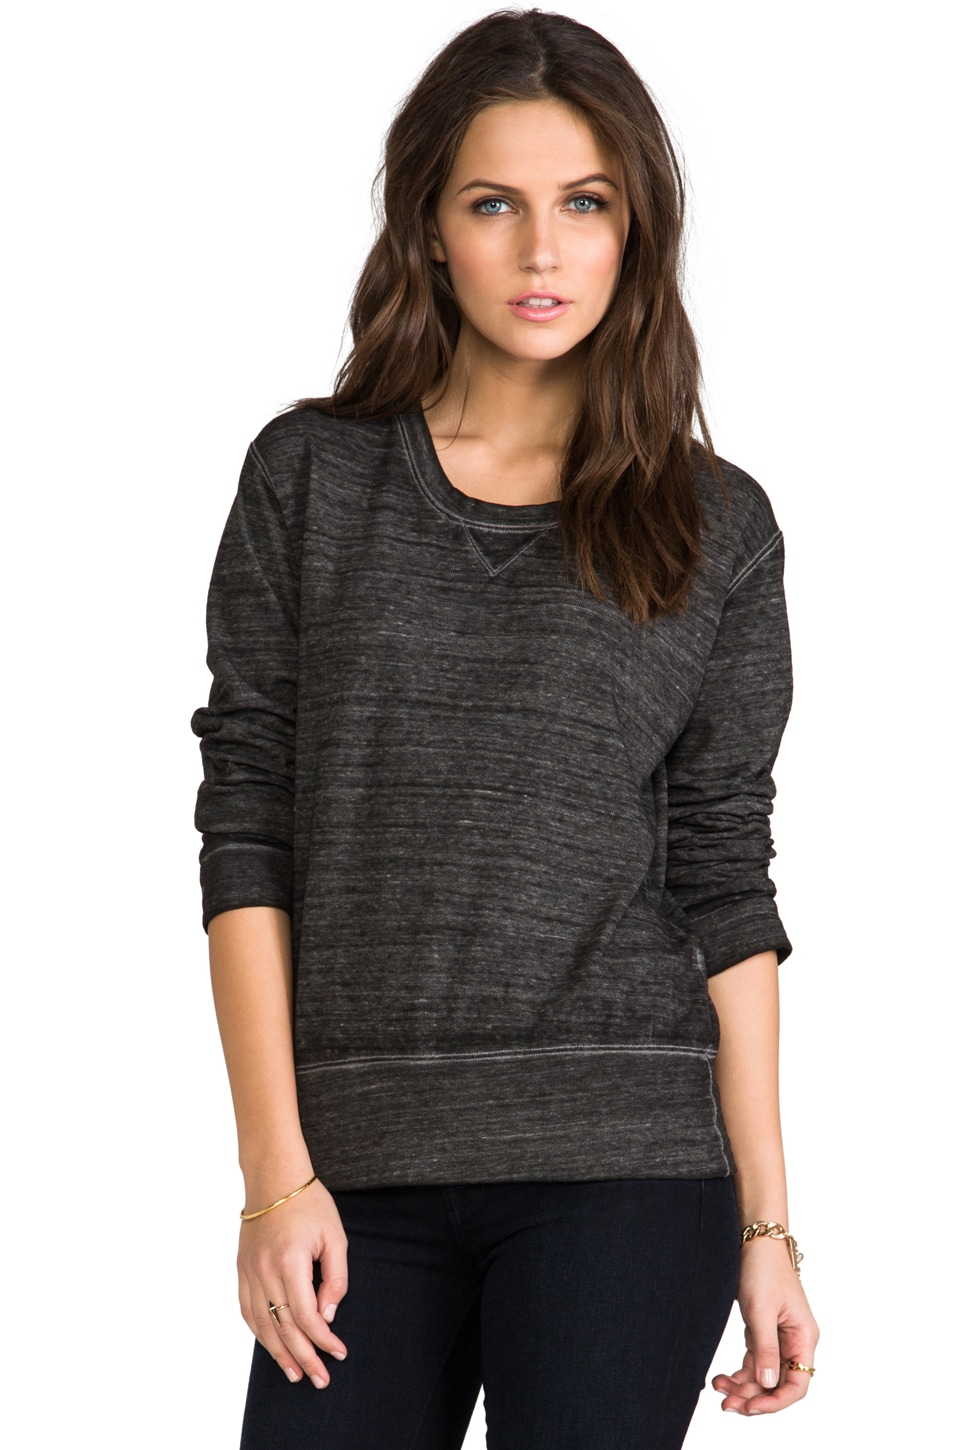 MONROW Vintage Burn Out Sweatshirt in Dark Heather